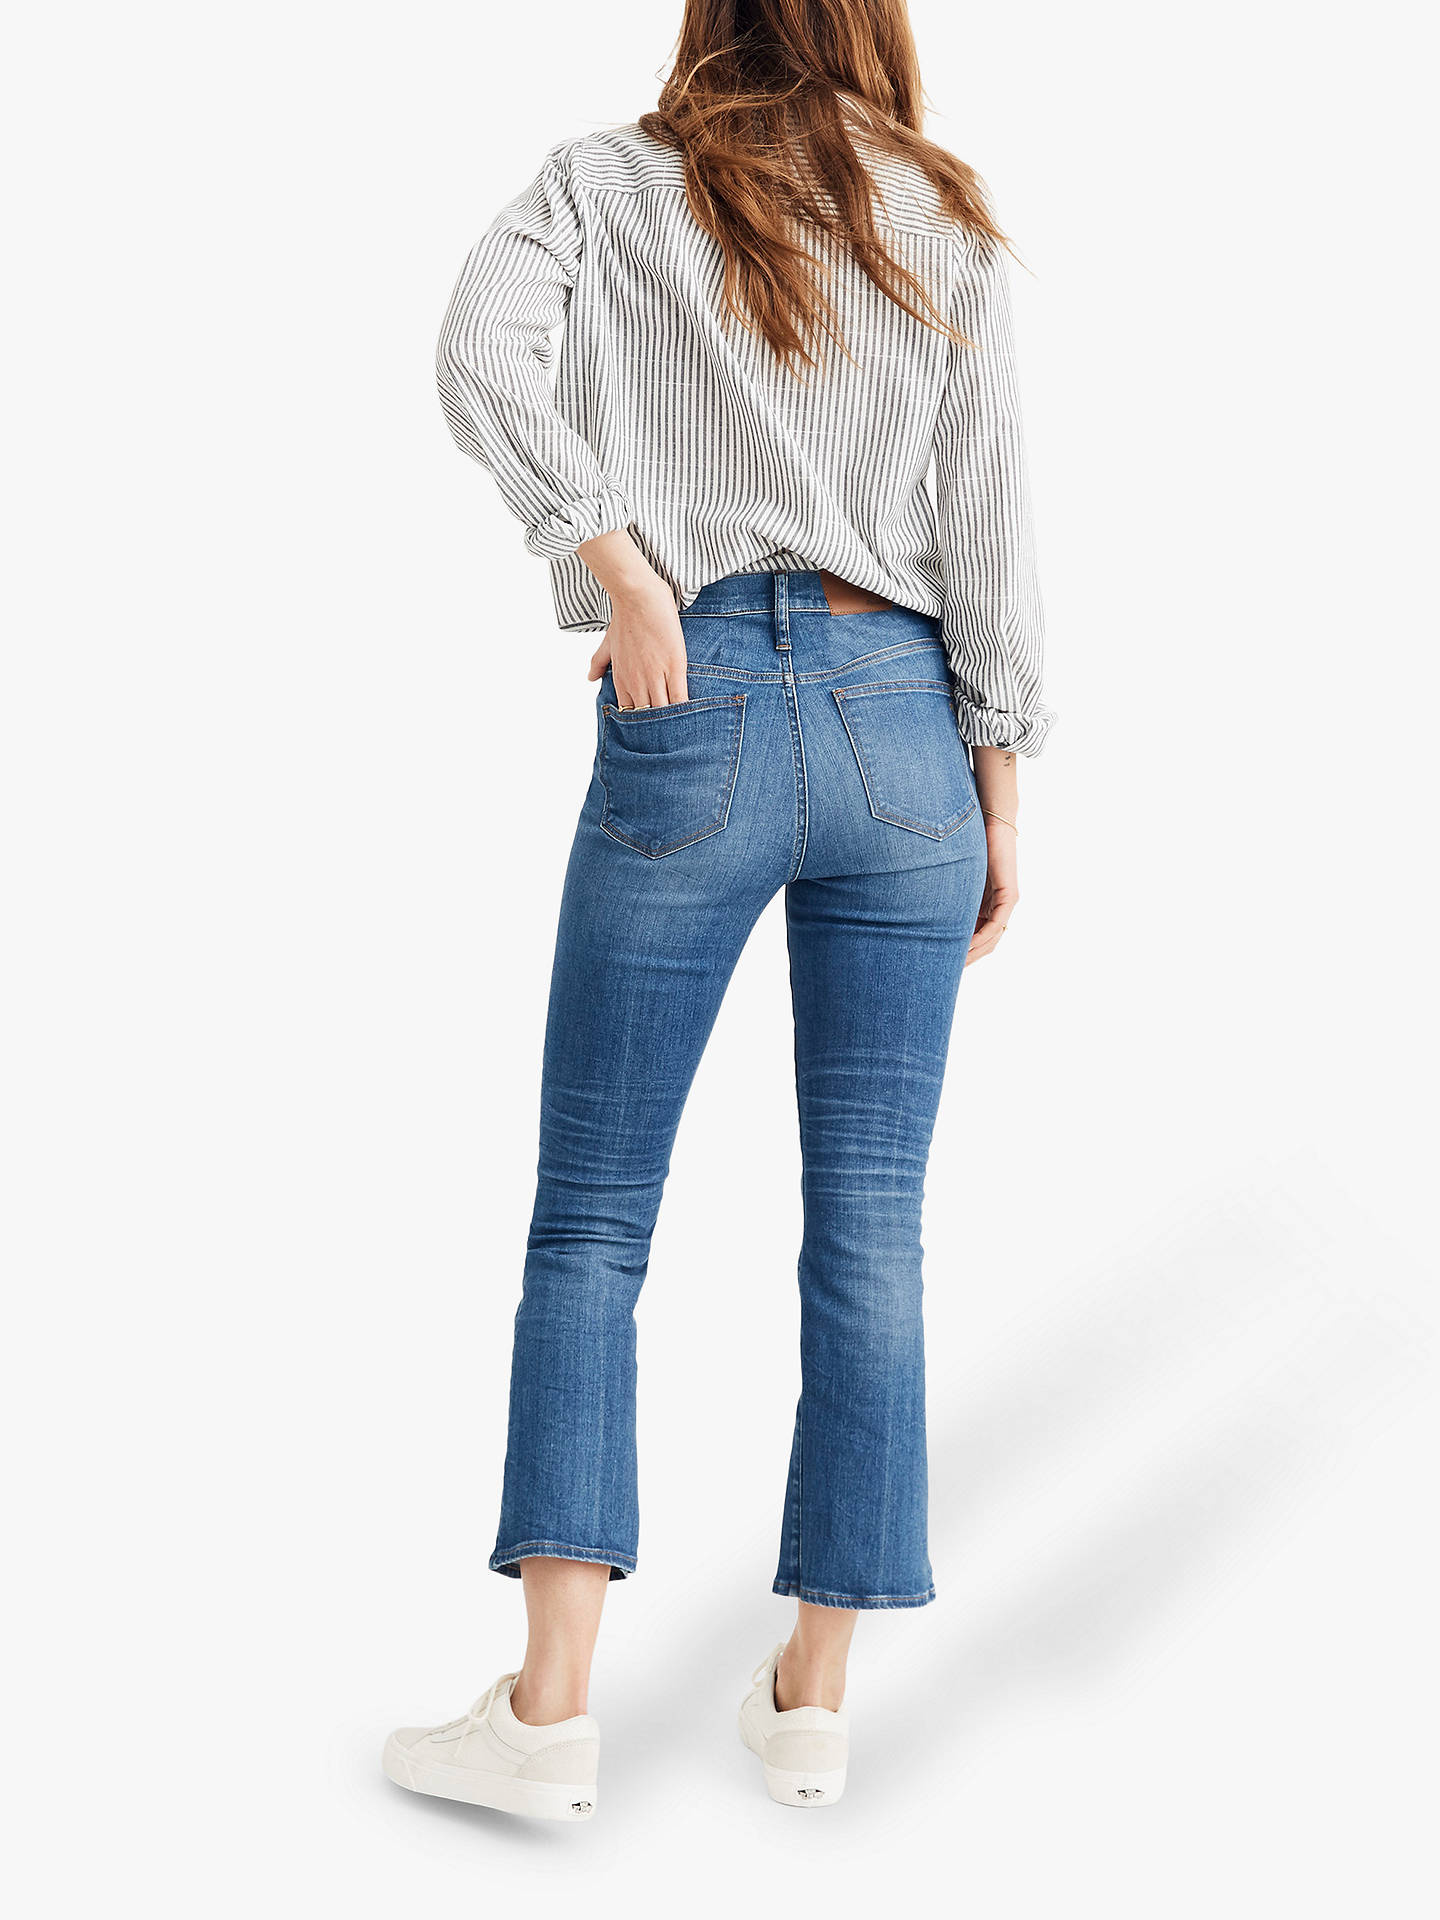 Buy Madewell Cali Demi-Boot Eco Jeans, Tierney Wash, 23 Online at johnlewis.com